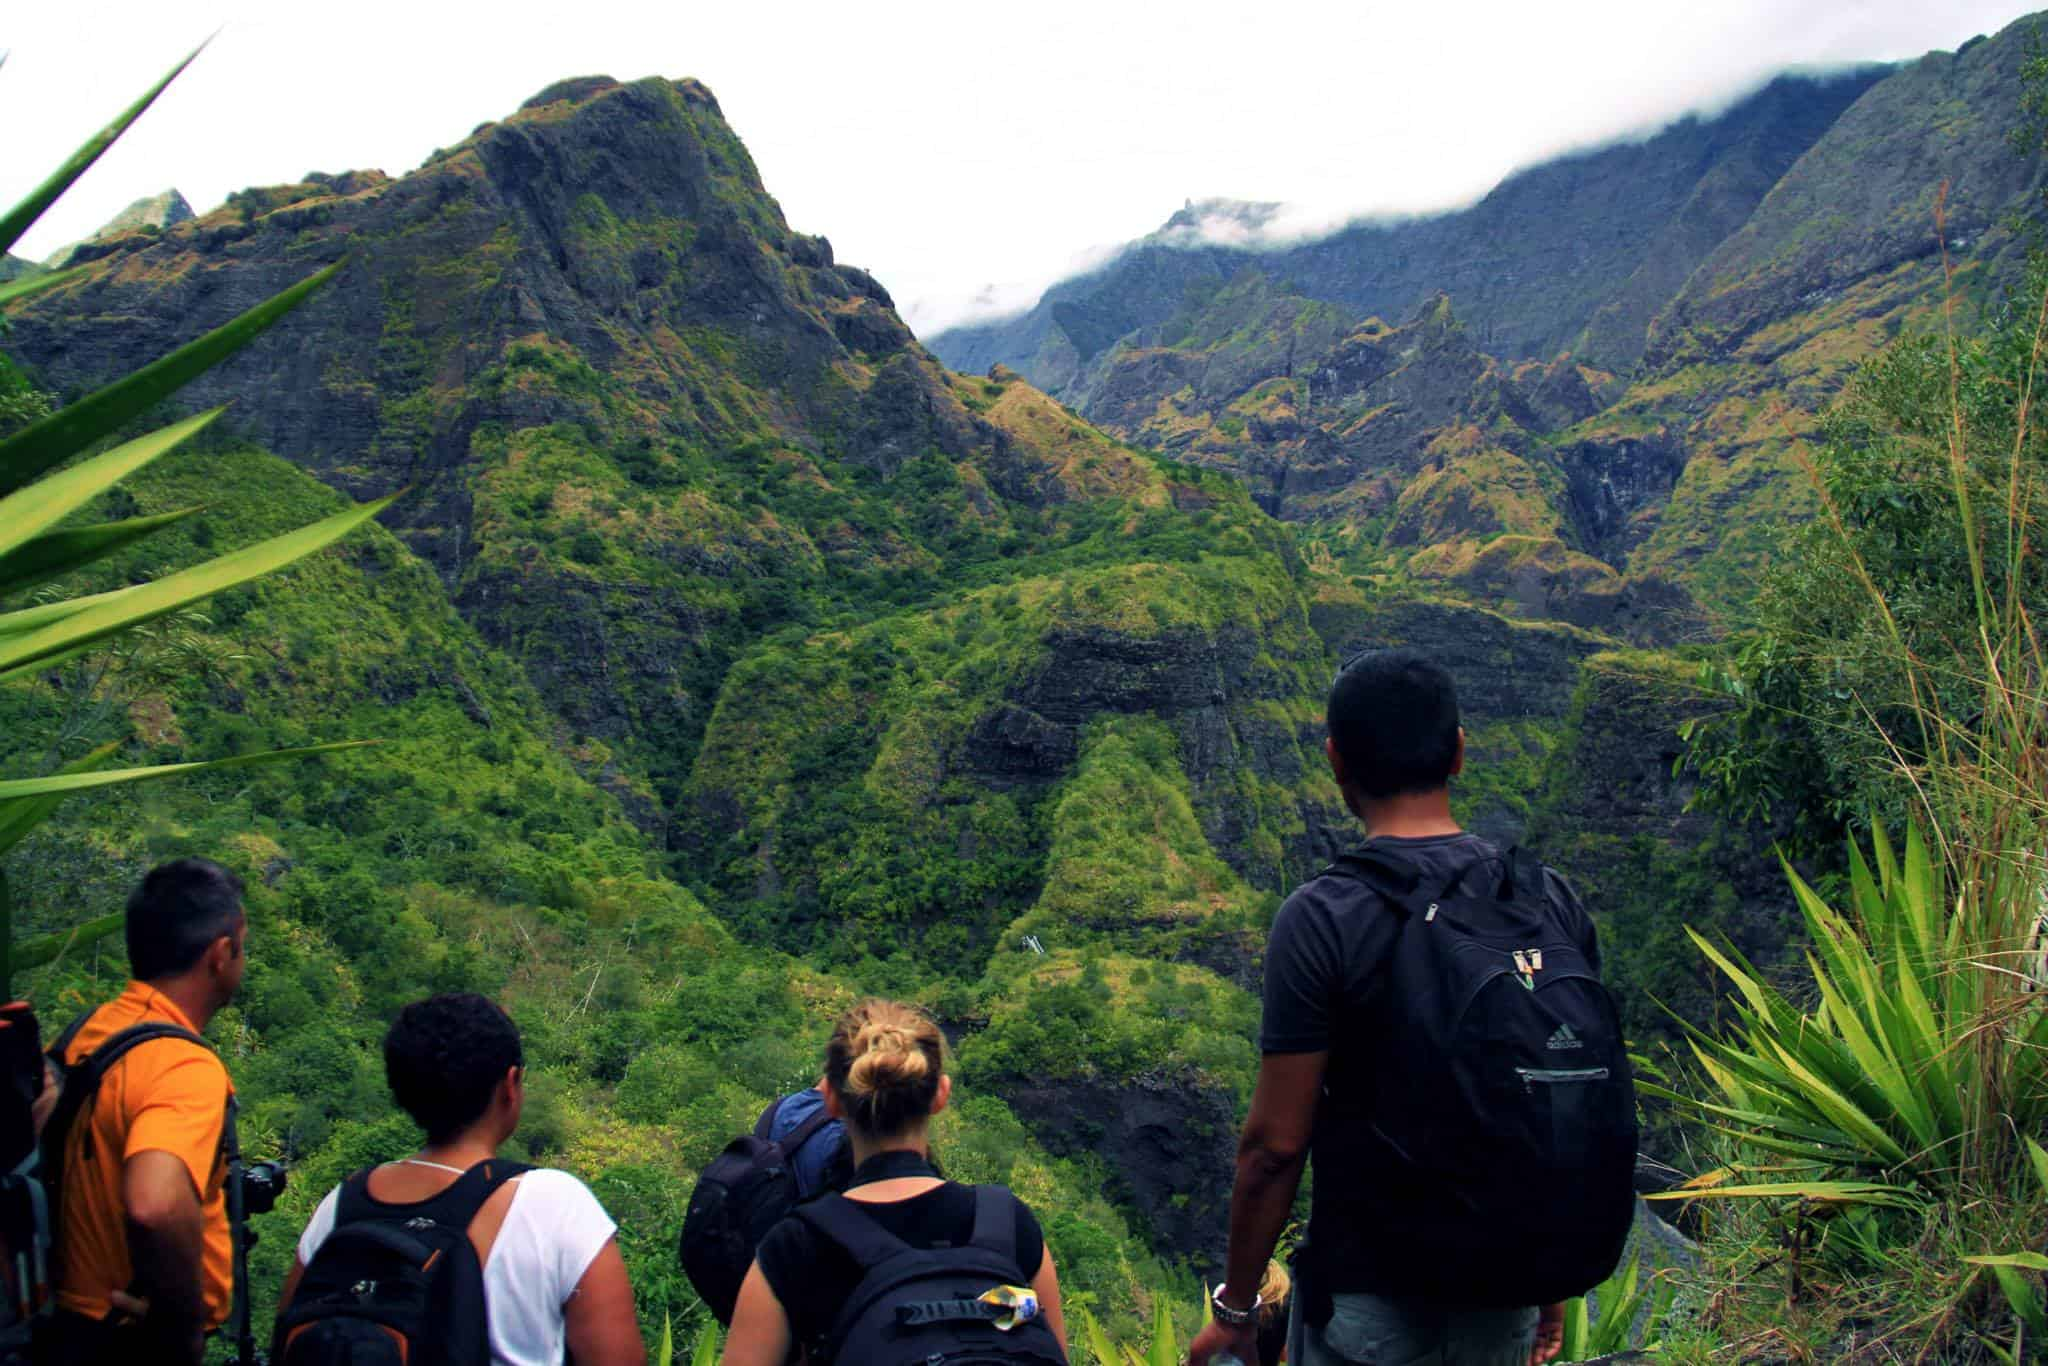 On a hike through the spectacular interior of Reunion Island.